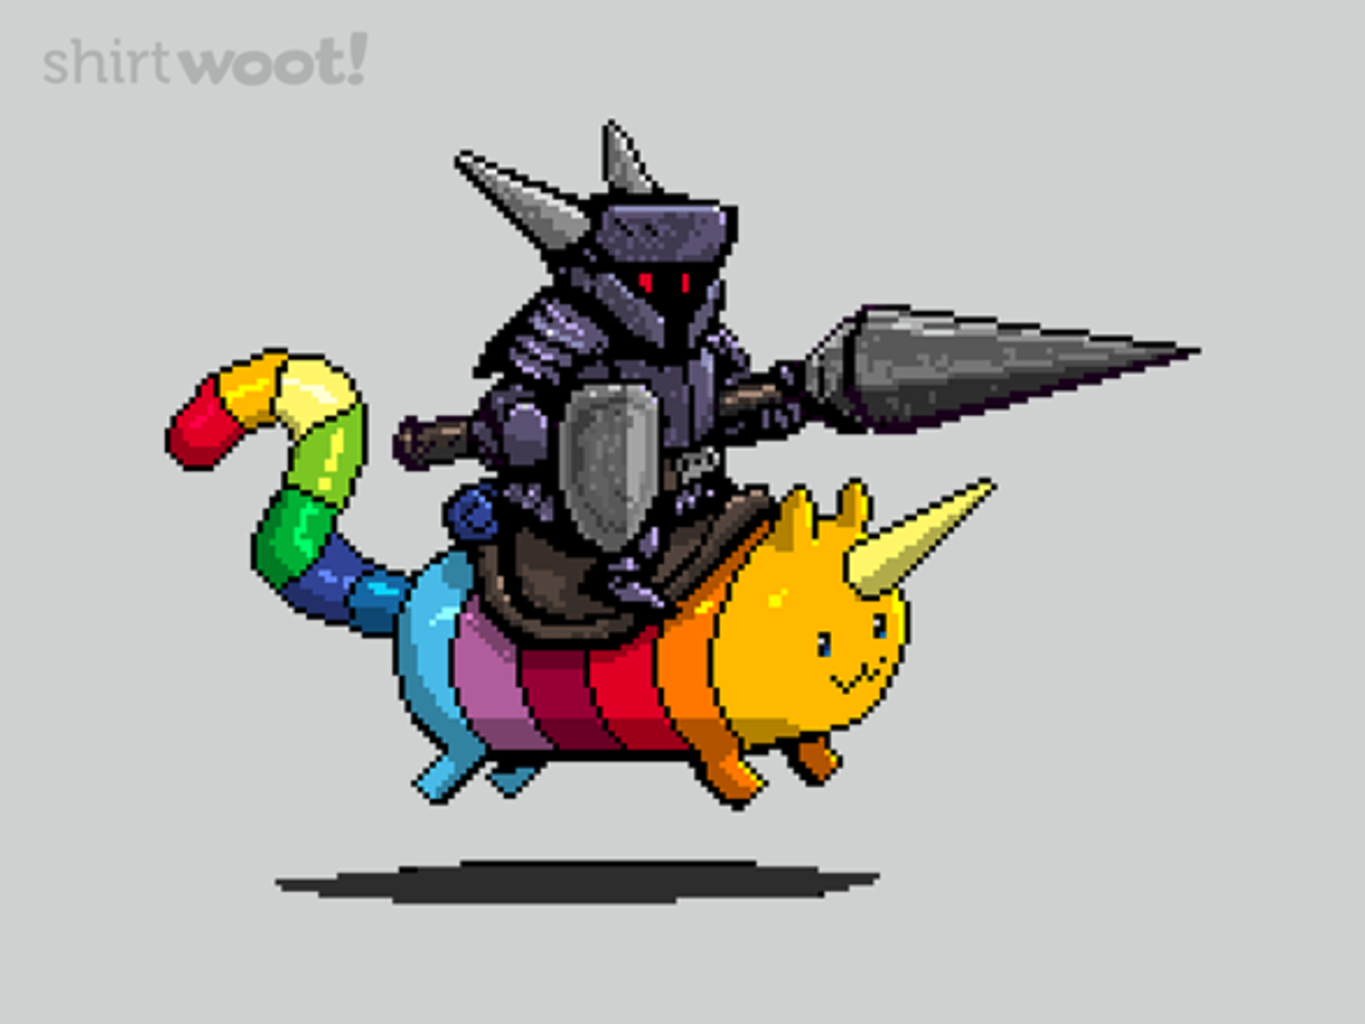 Woot!: Rainbow Cat and the Dark Knight - $15.00 + Free shipping